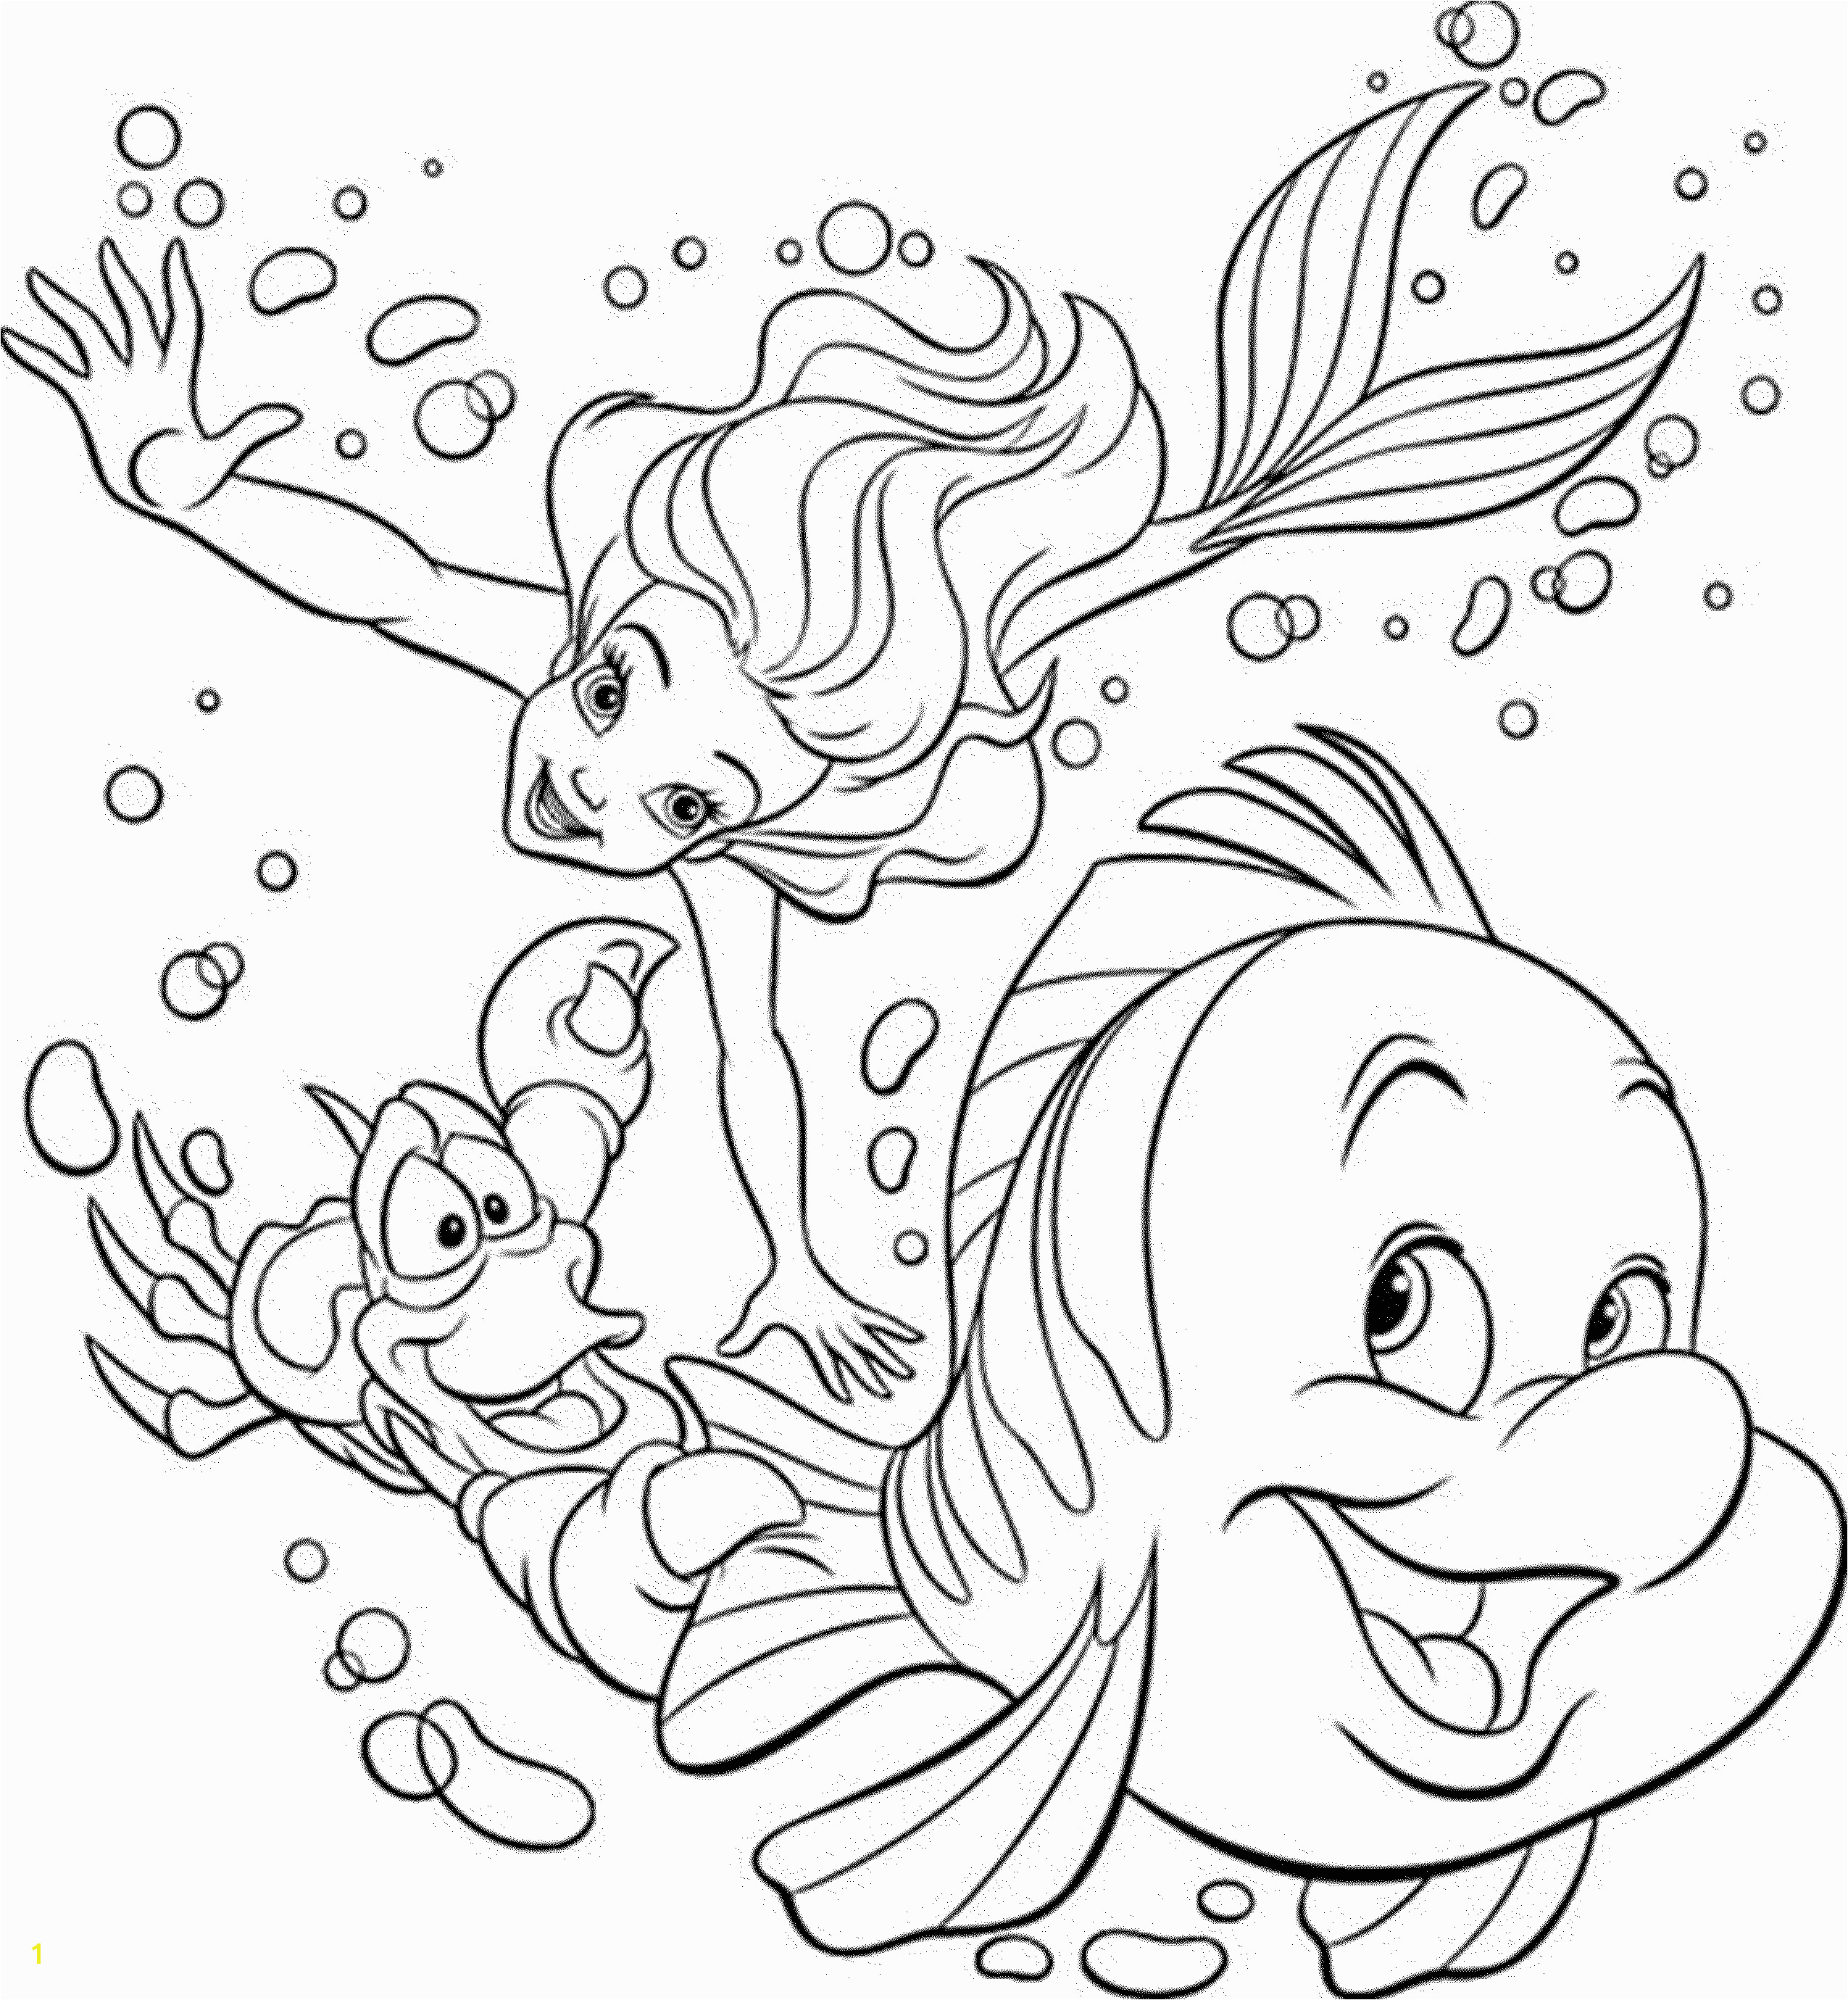 2nd Grade Coloring Pages Polar Bear Coloring Pages – 1224—918 High Definition Coloring